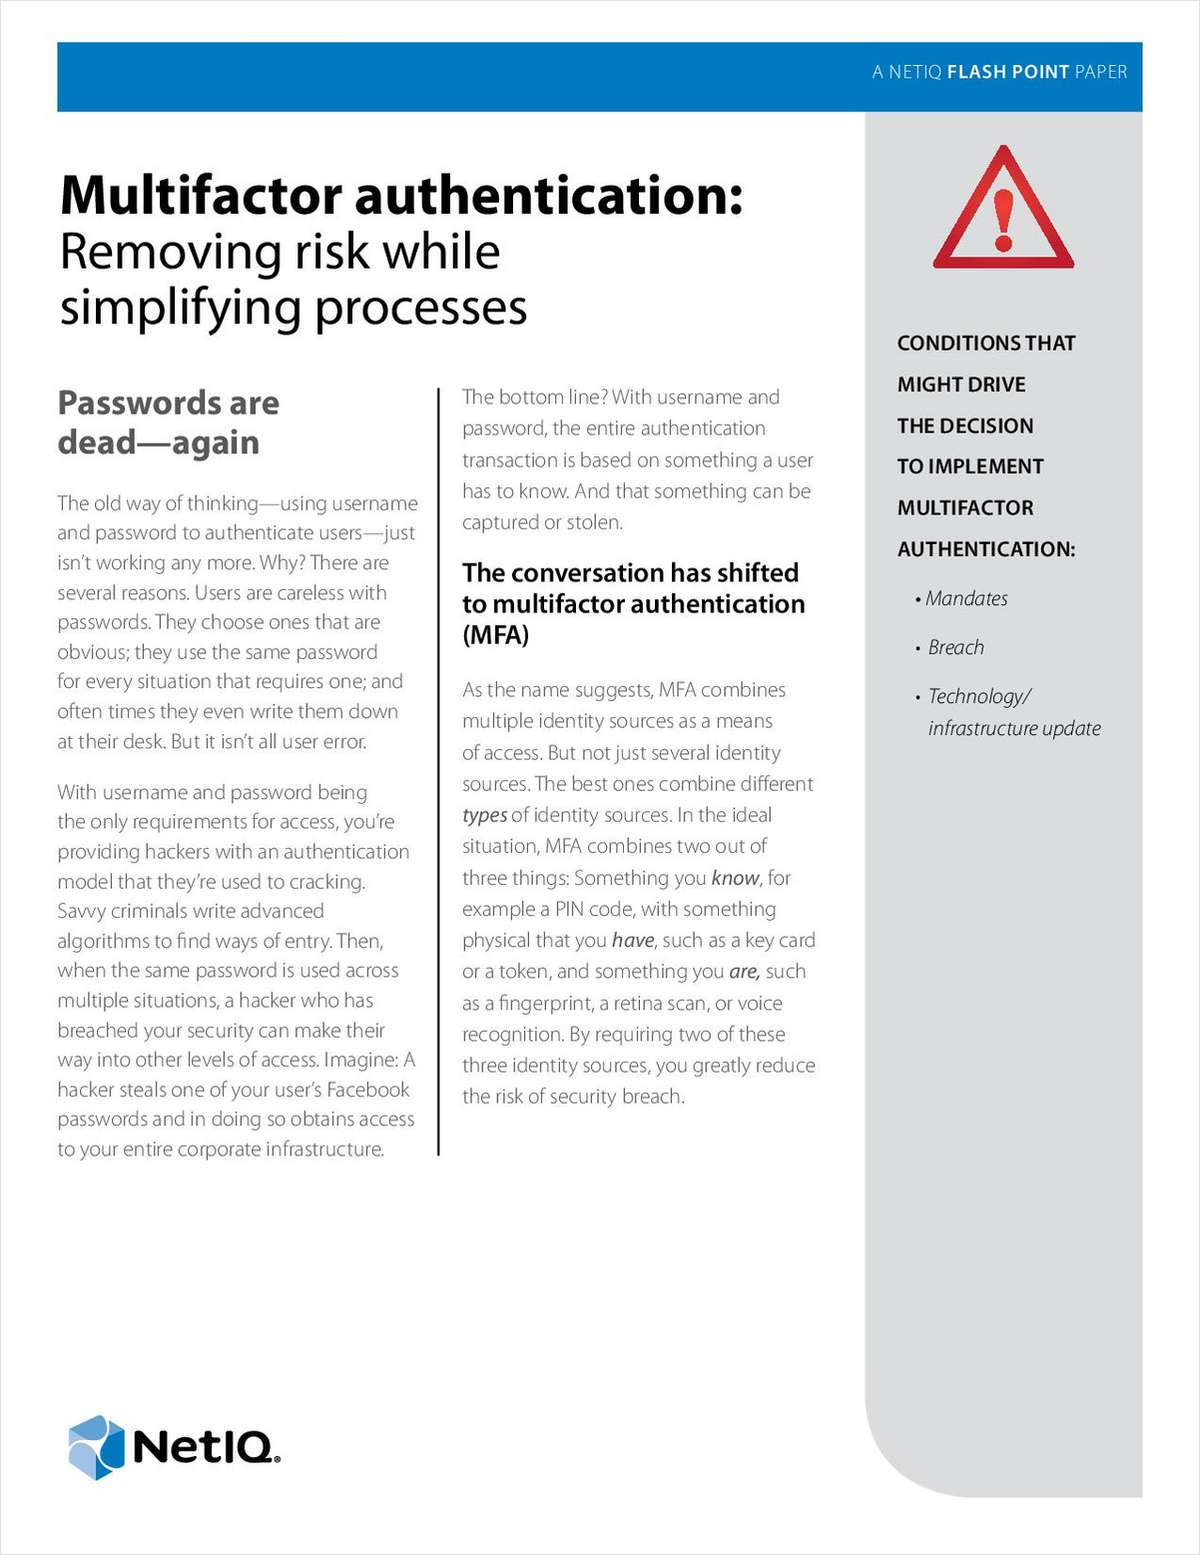 Remove Risk and Simplify with Multifactor Authentication